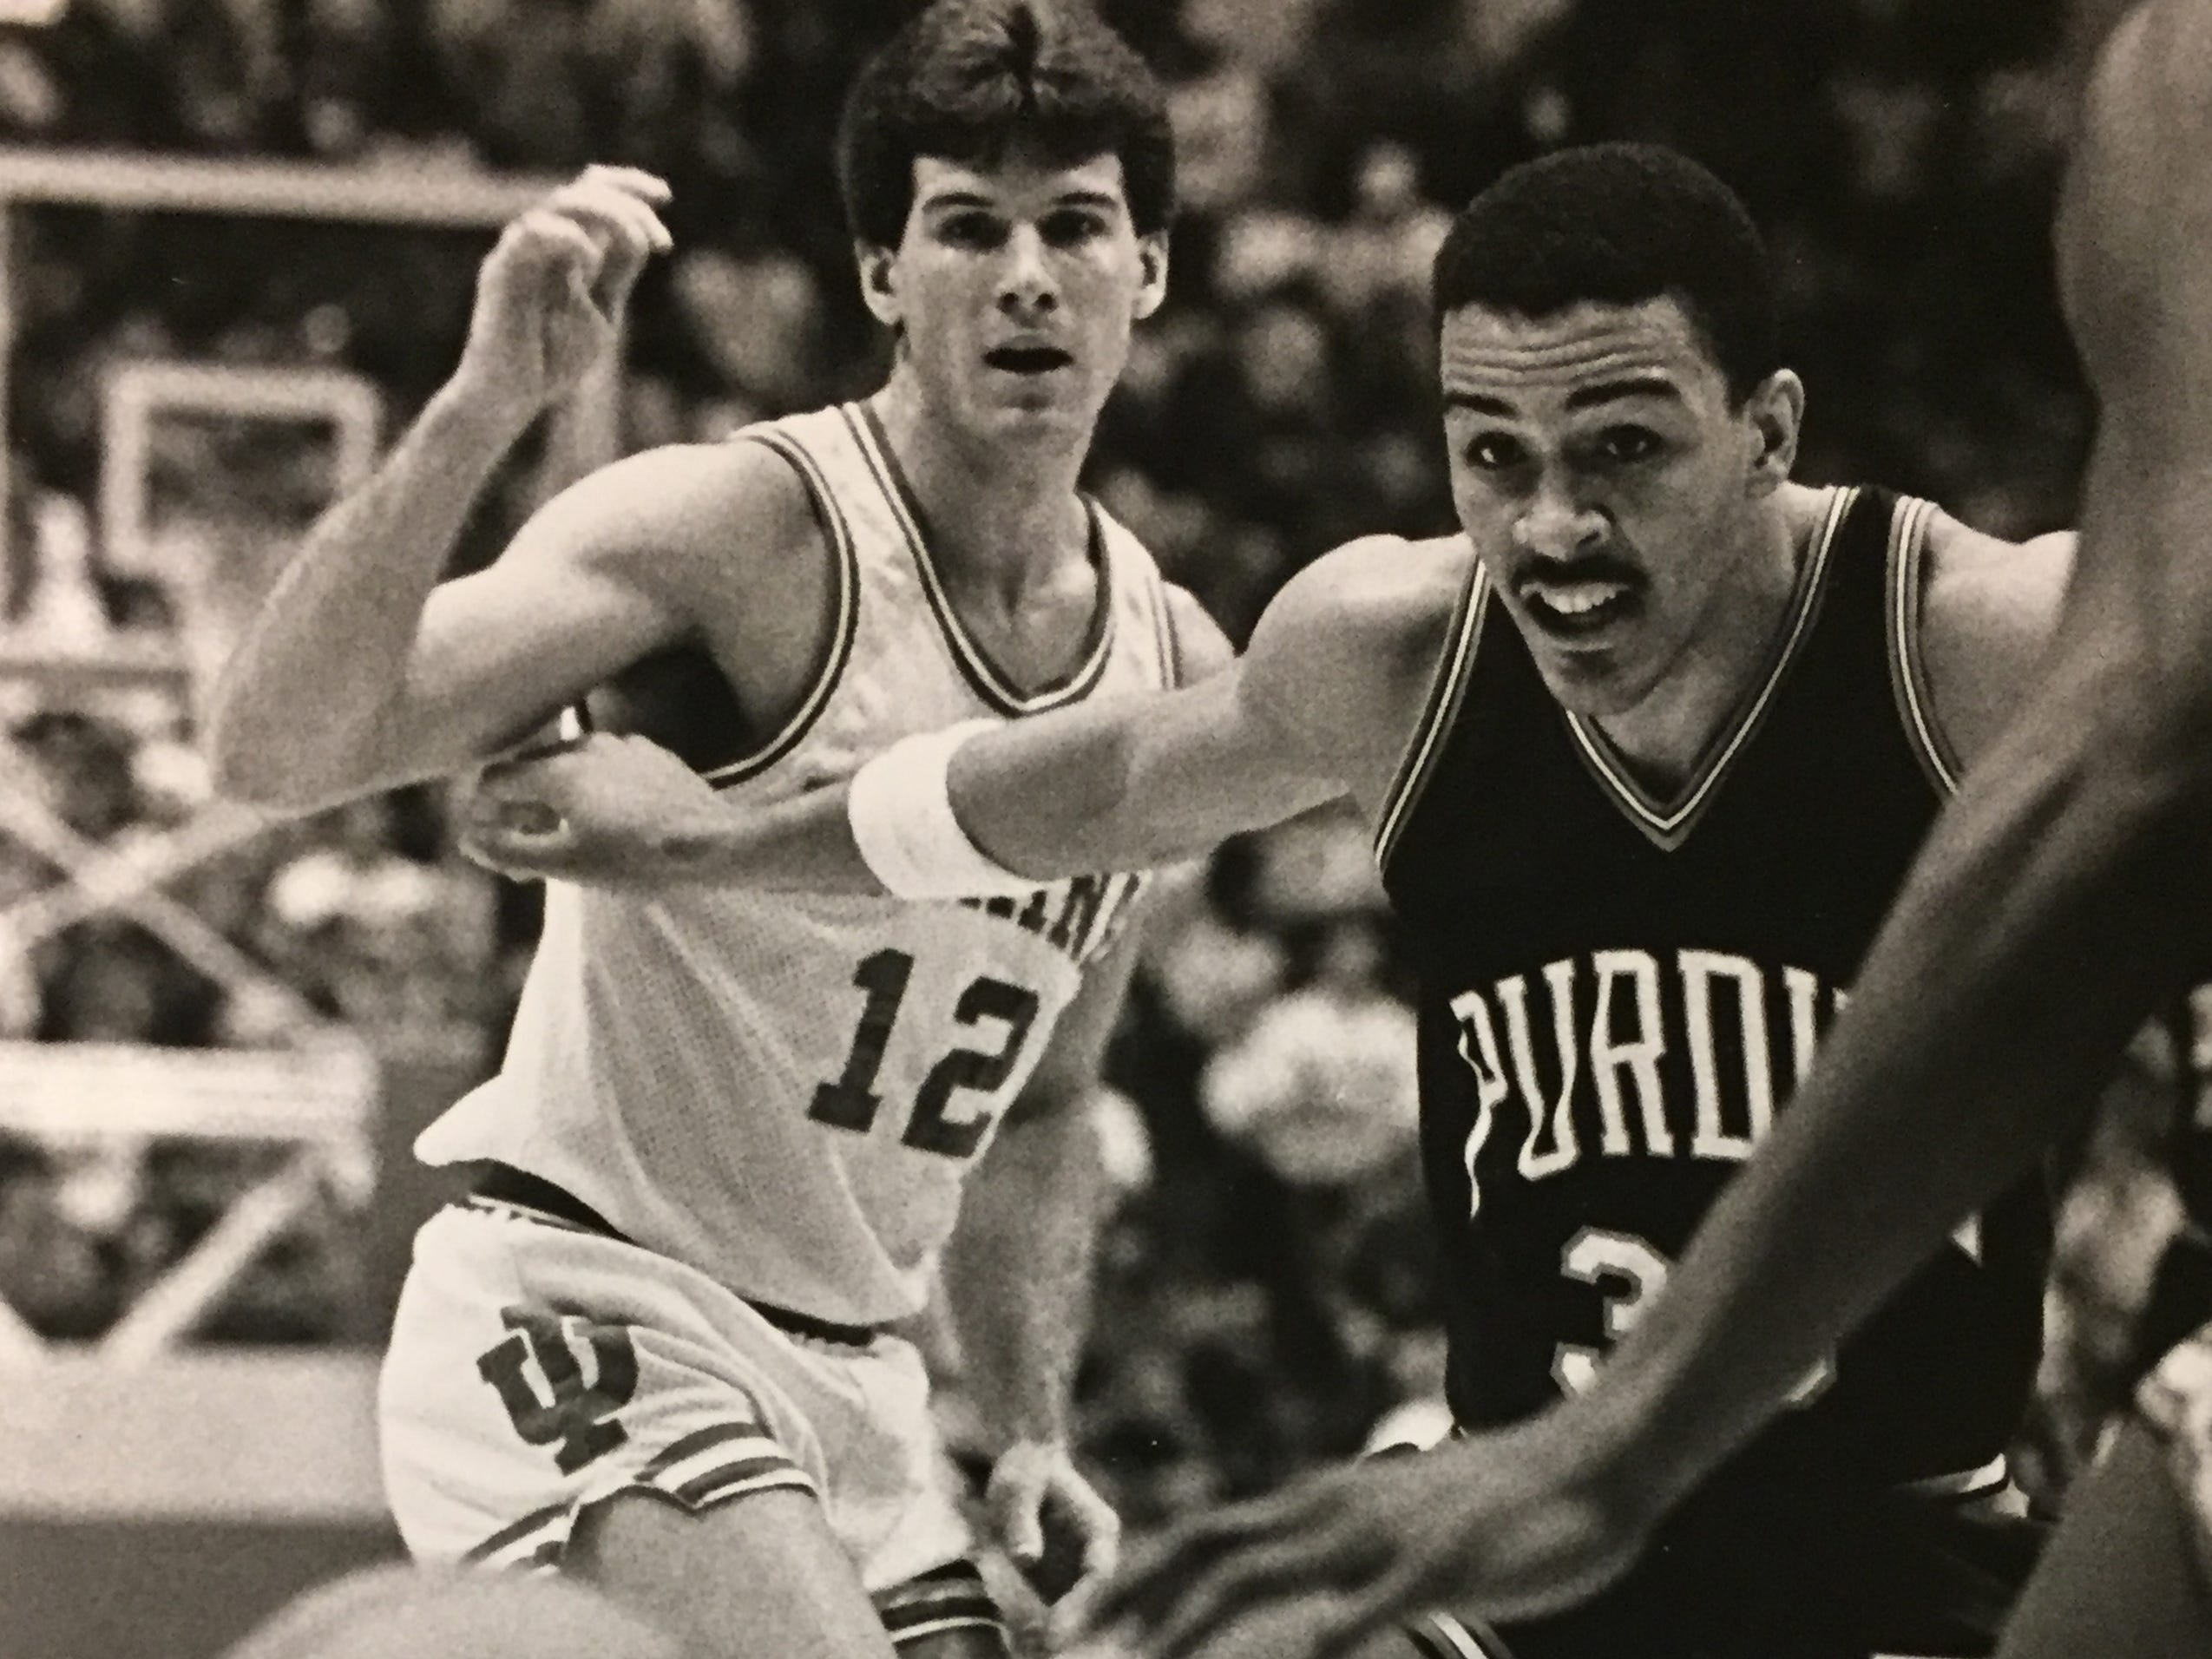 Steve Alford and Purdue's Troy Mitchell watch the ball go out of bounds on Jan. 23, 1986.